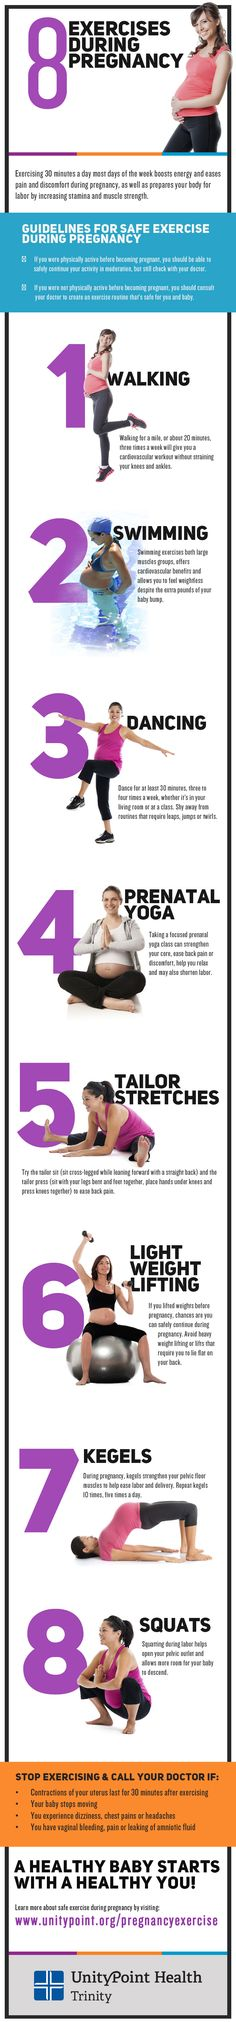 "During pregnancy, you gain significant weight, and since the weight is primarily distributed in front of your body, it shifts your center of gravity forward, which creates a bend in the lower (lumbar) spine called a ""lordotic"" curve. This shift not only affects your posture and balance, but can also cause significant low back pain – both during and after your pregnancy."